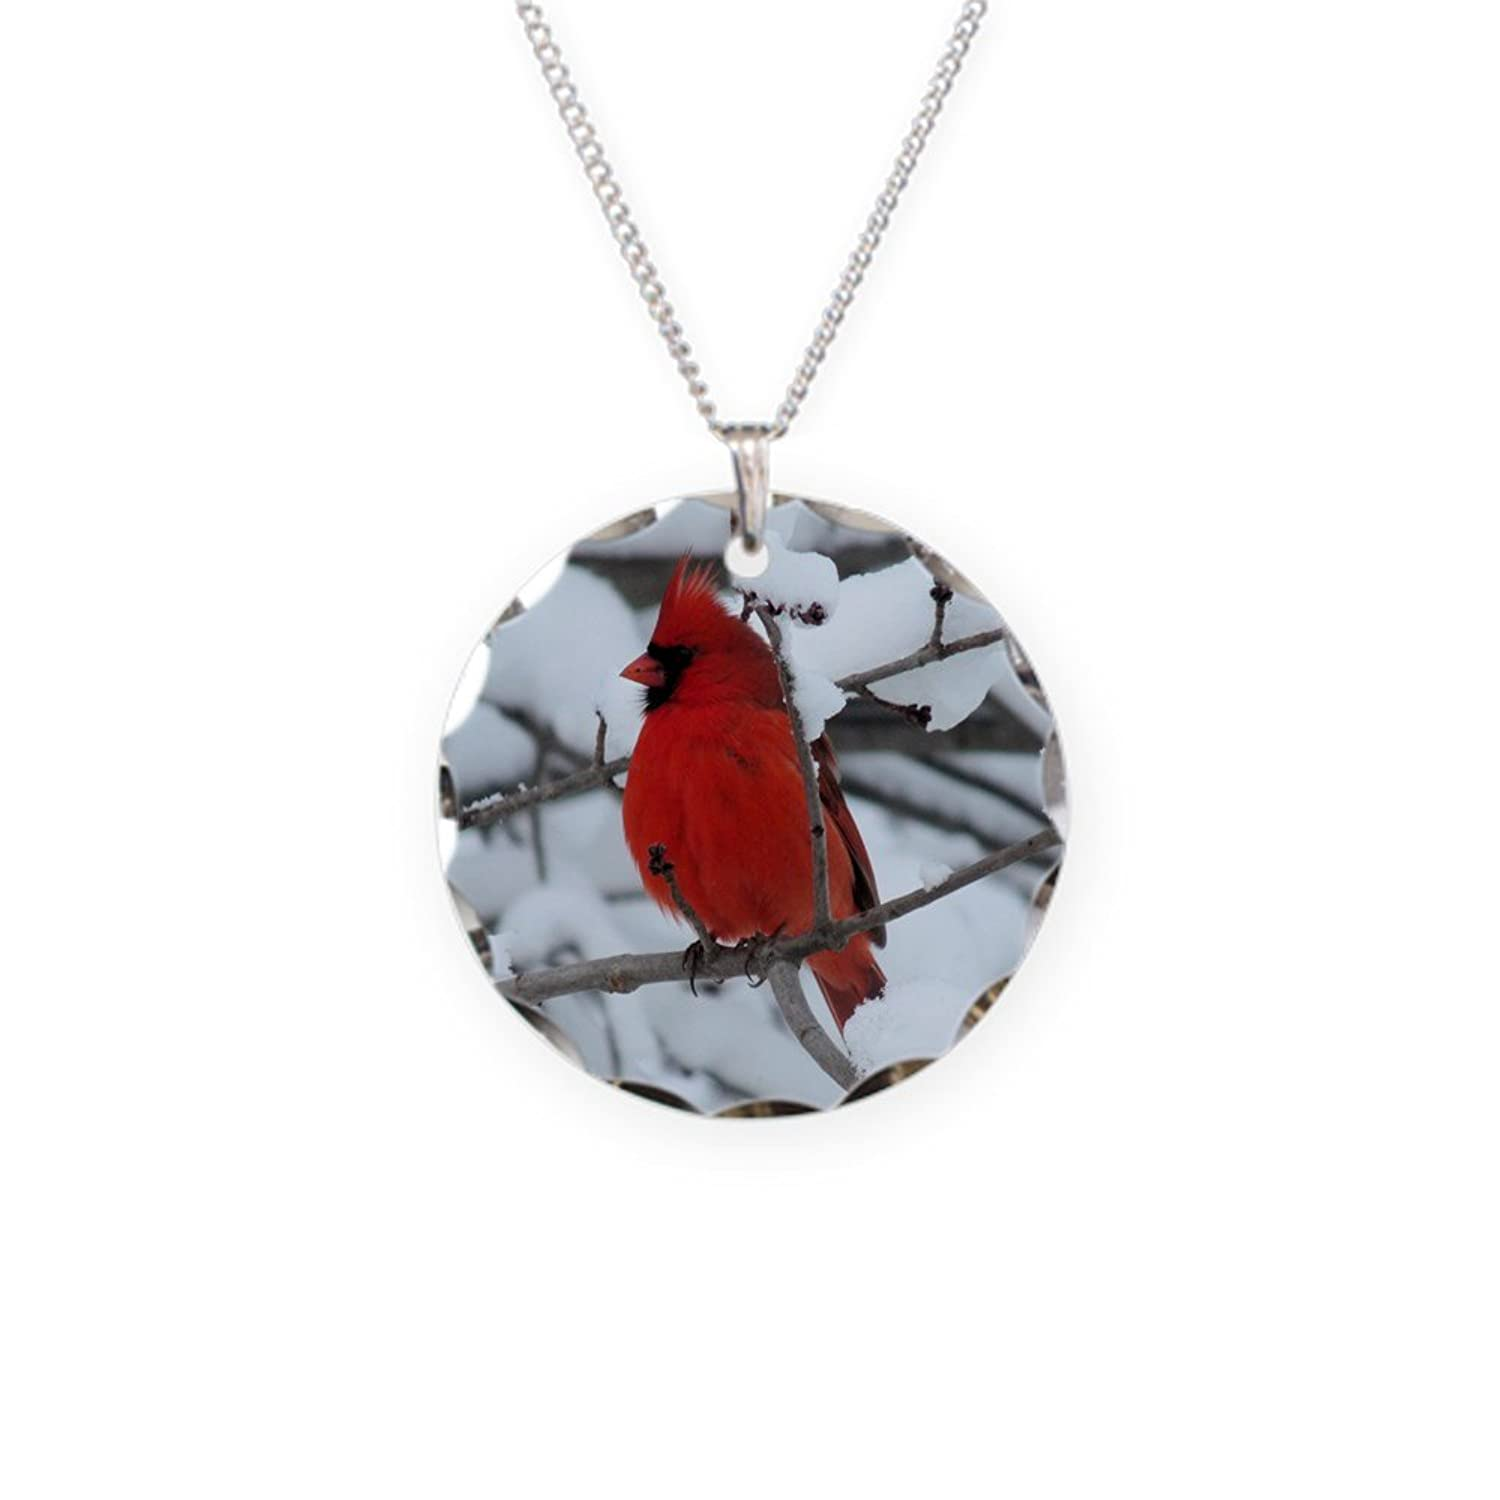 cardinal glass dp necklace com in pendant heaven amazon handmade